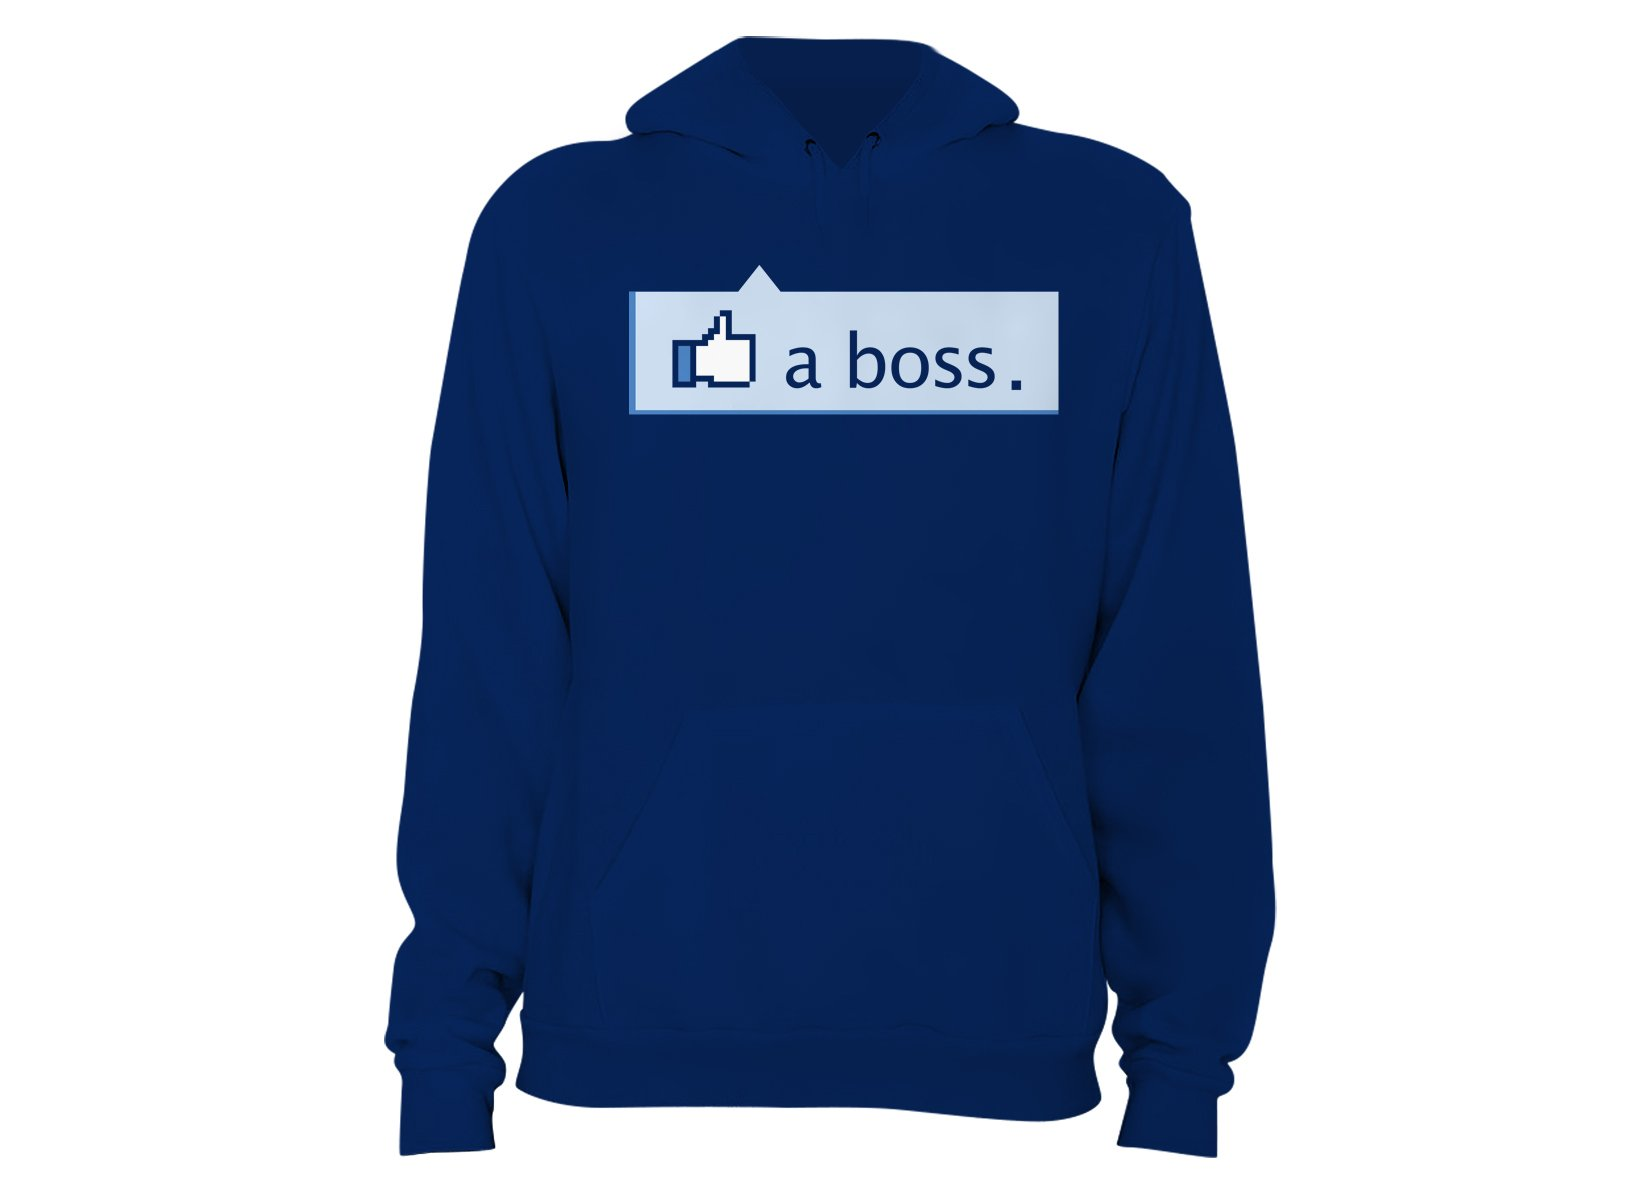 Like A Boss Thumbs Up on Hoodie